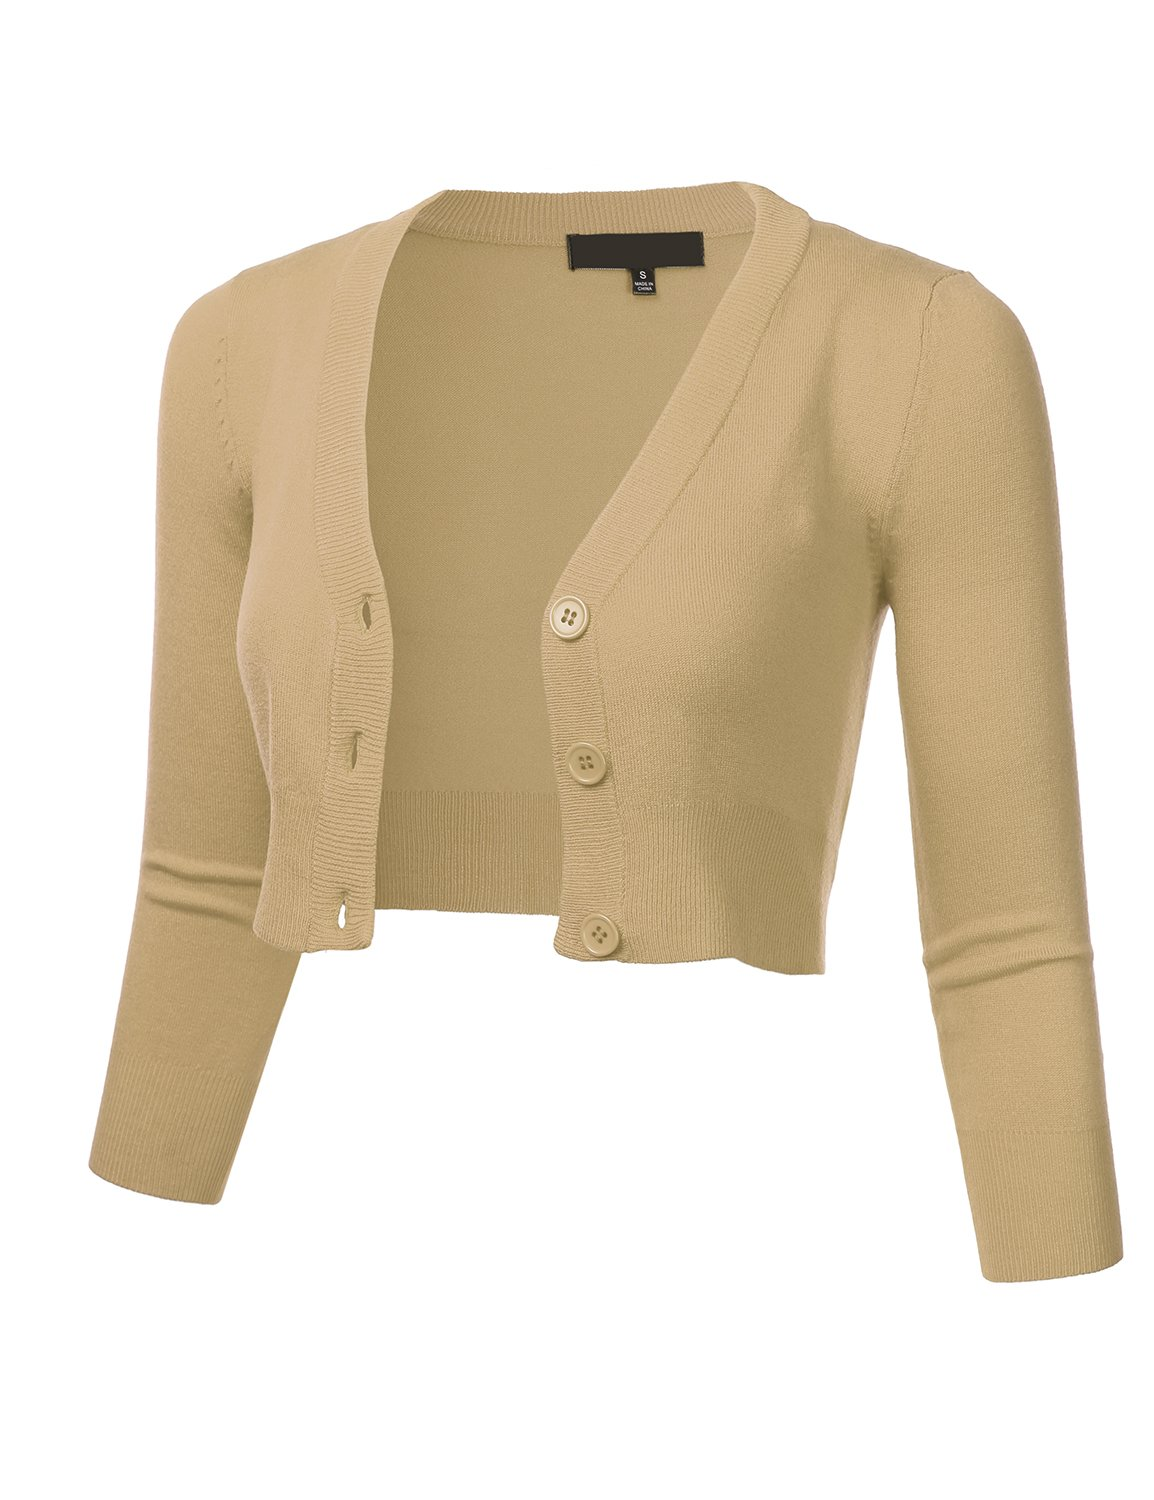 FLORIA Women Solid Button Down 3/4 Sleeve Cropped Bolero Cardigan Sweater TAUPE M